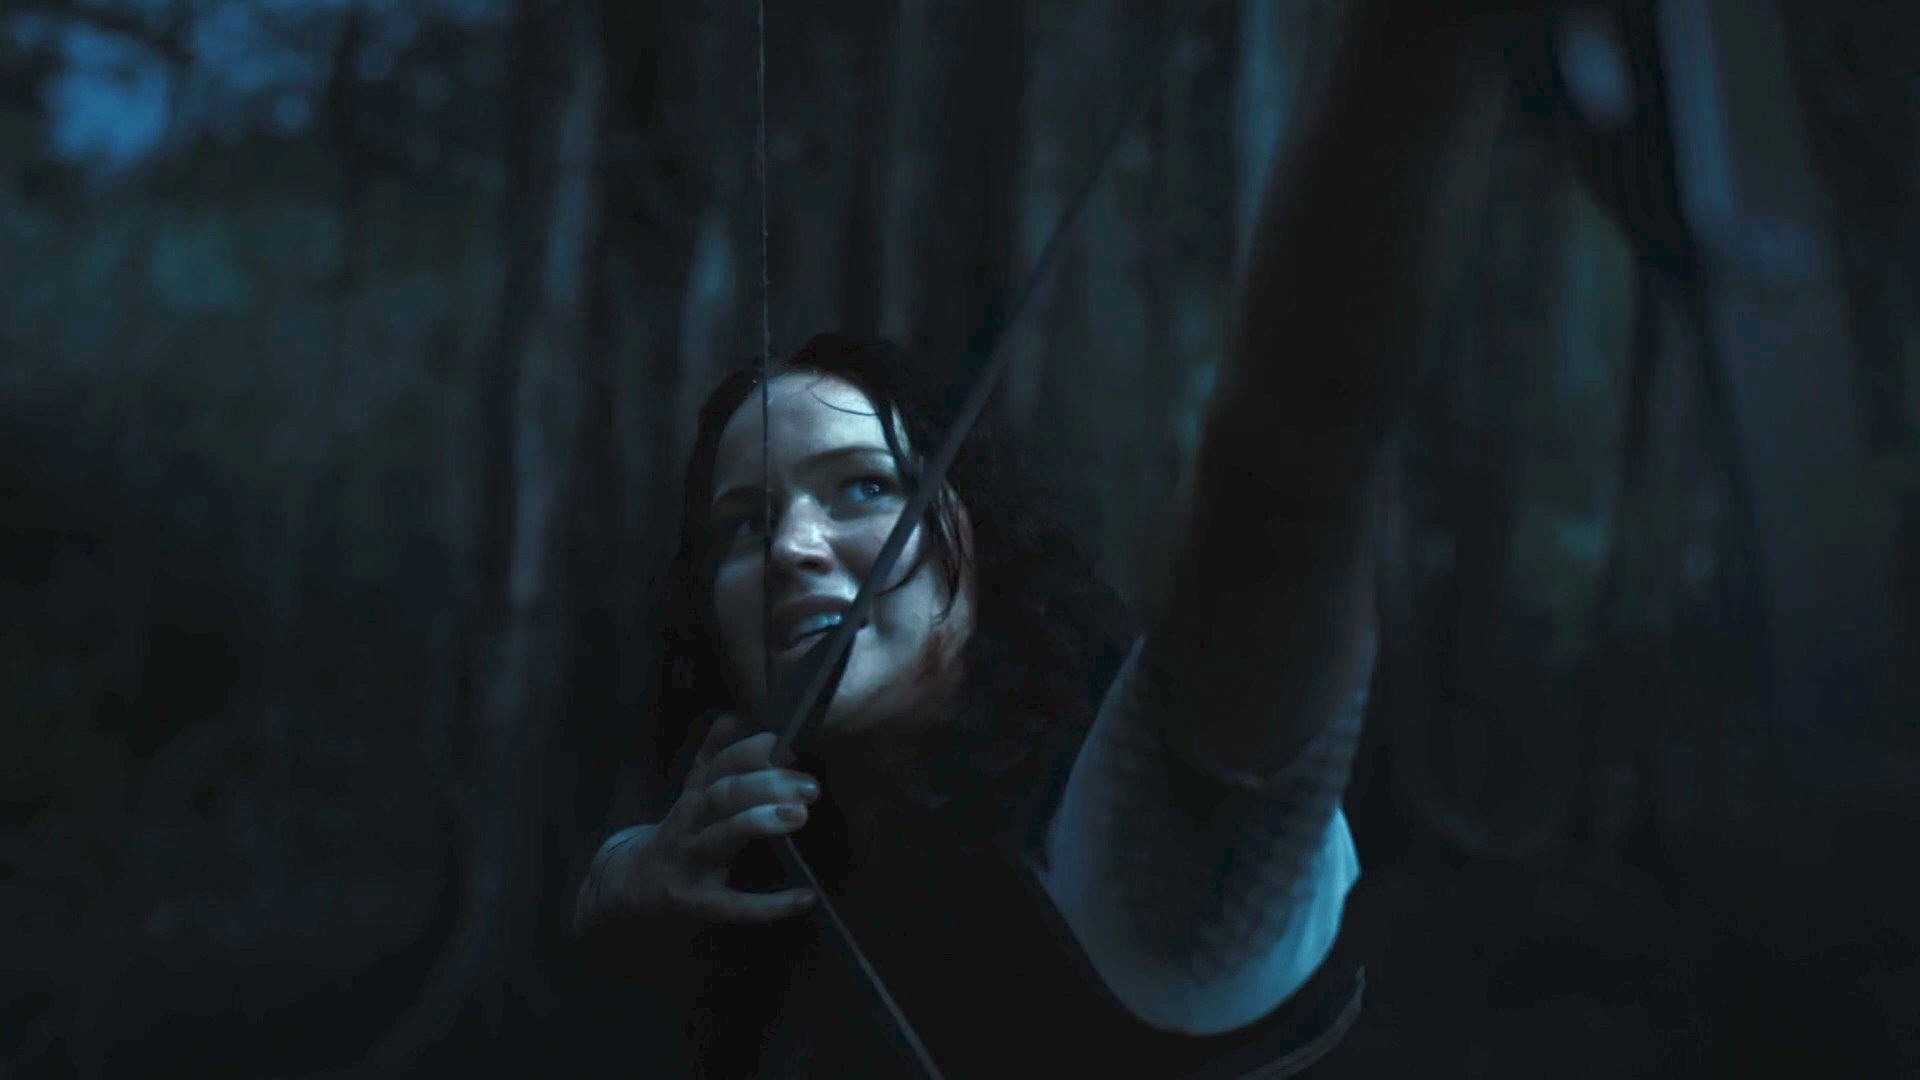 Katniss aims an arrow.